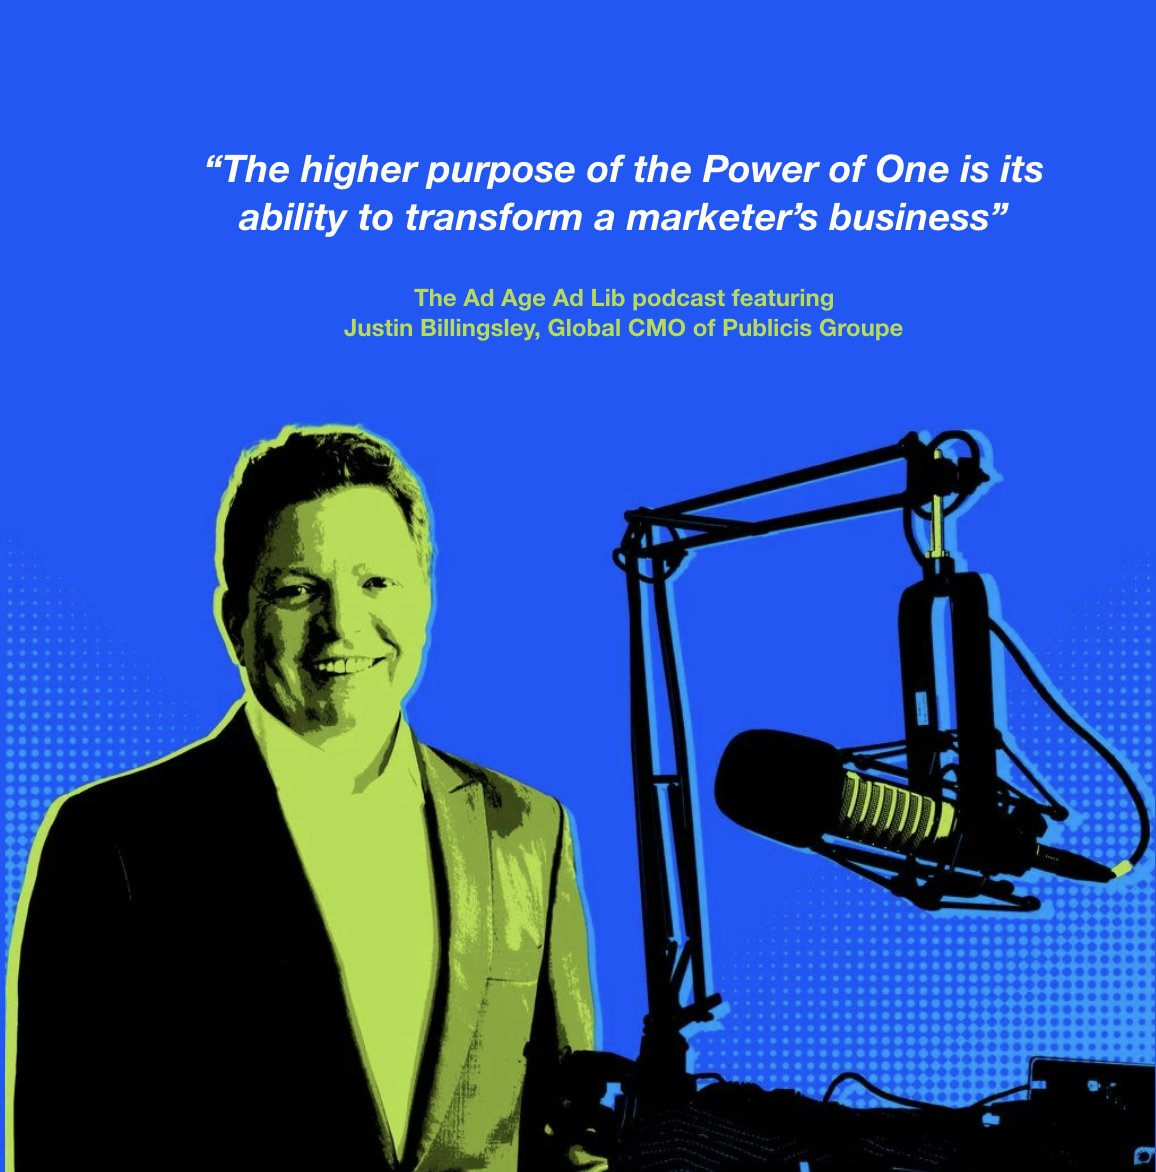 """""""The higher purpose of the #PowerOfOne — and why Justin Billingsley @8illingsley is convinced it will change the industry down to its economics — is its ability to transform a marketer's business."""" Via @adage ➡️ https://t.co/B18pvAYuSl https://t.co/StyXTgOnIT"""